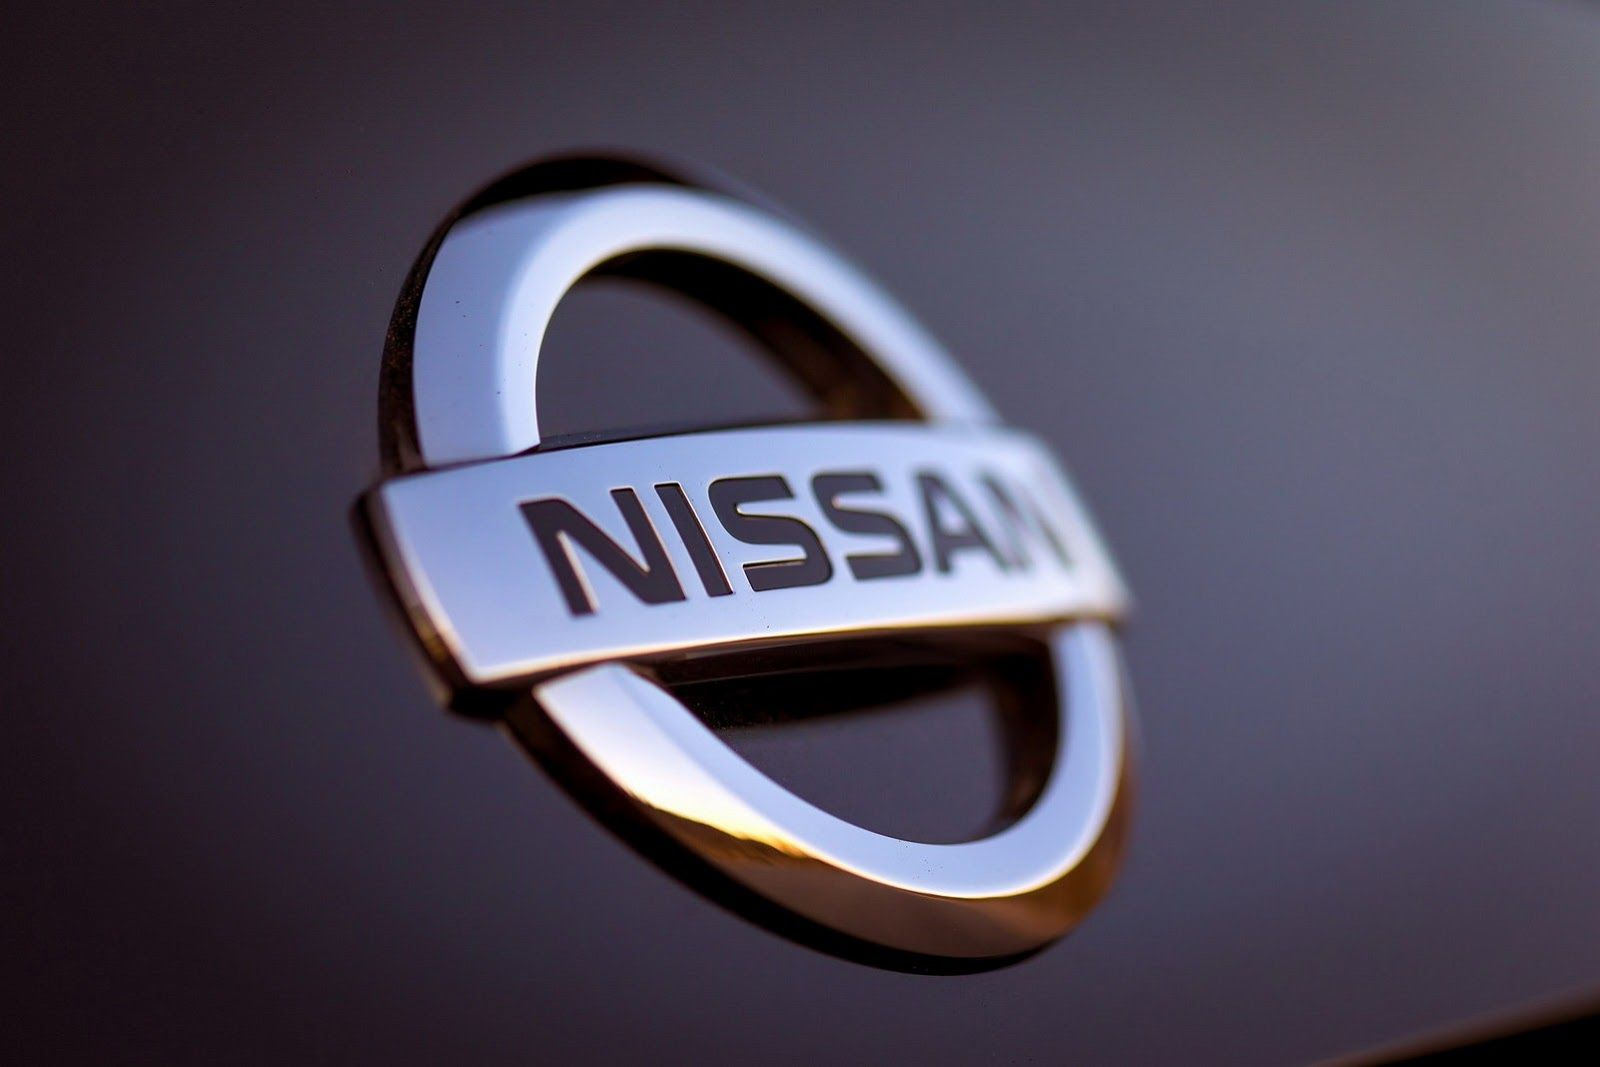 nissan-car-logo-wallpaper-59070-60851-hd-wallpapers